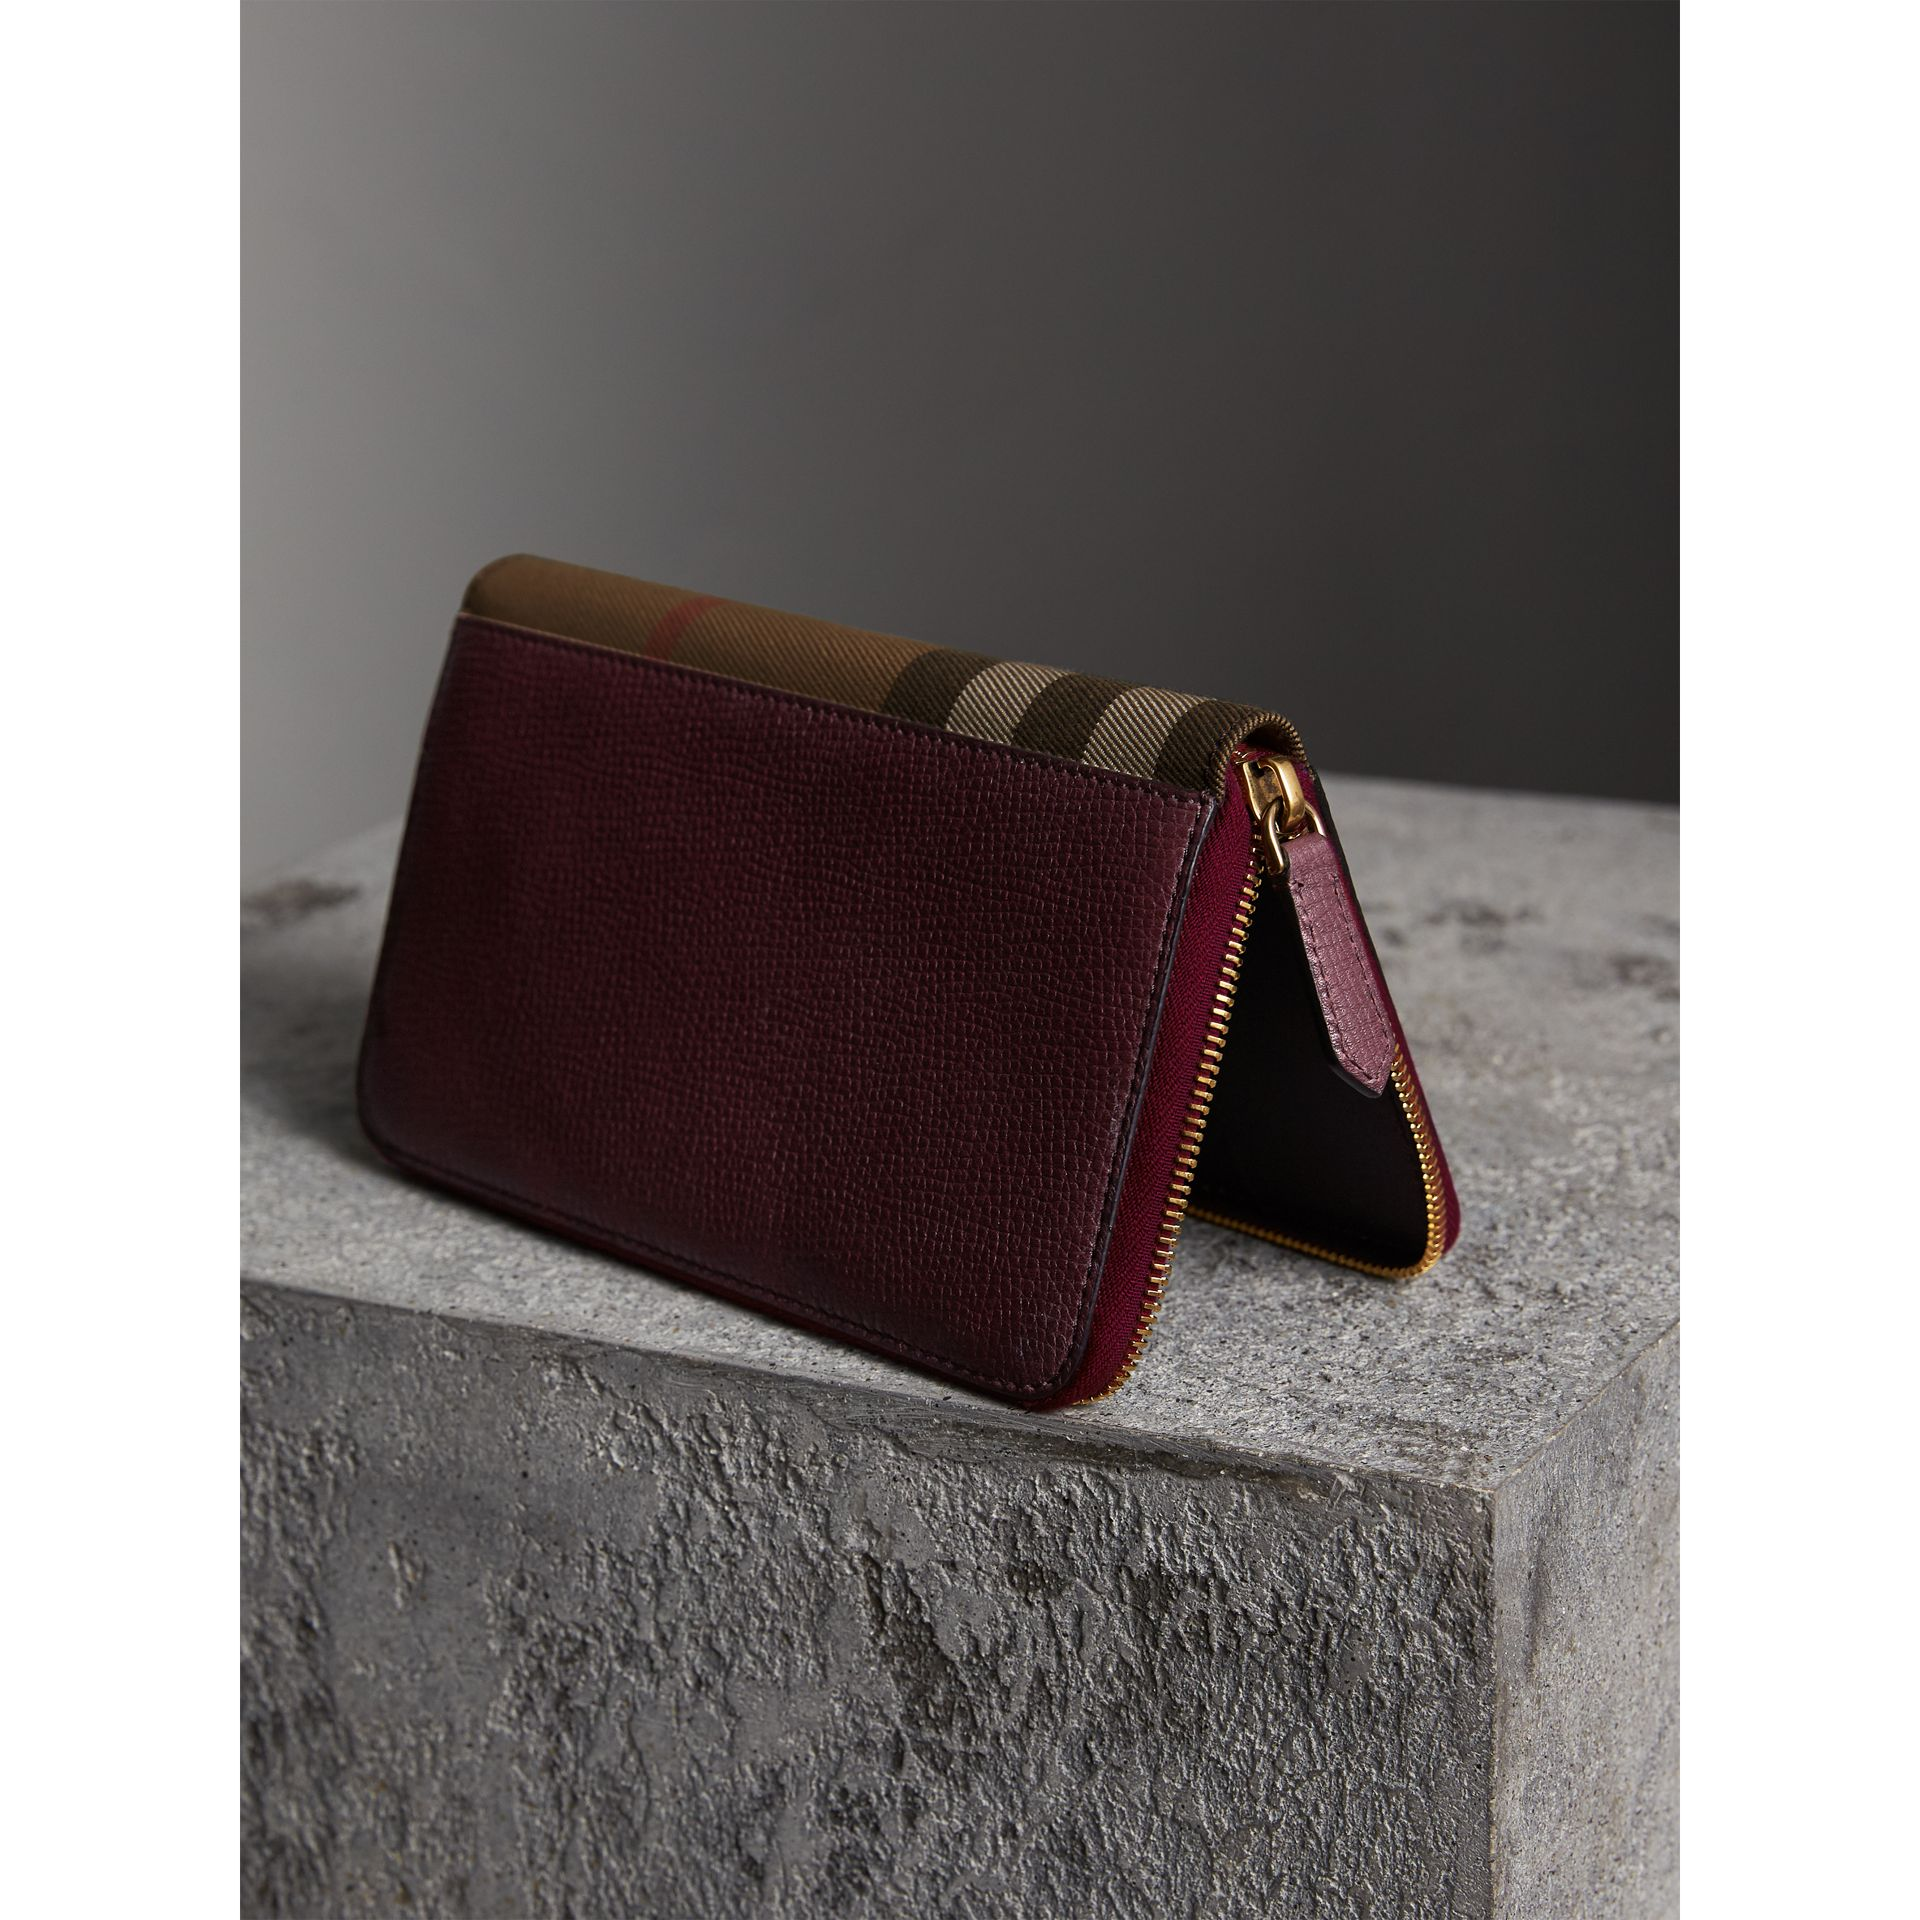 House Check and Grainy Leather Ziparound Wallet in Wine | Burberry United Kingdom - gallery image 2